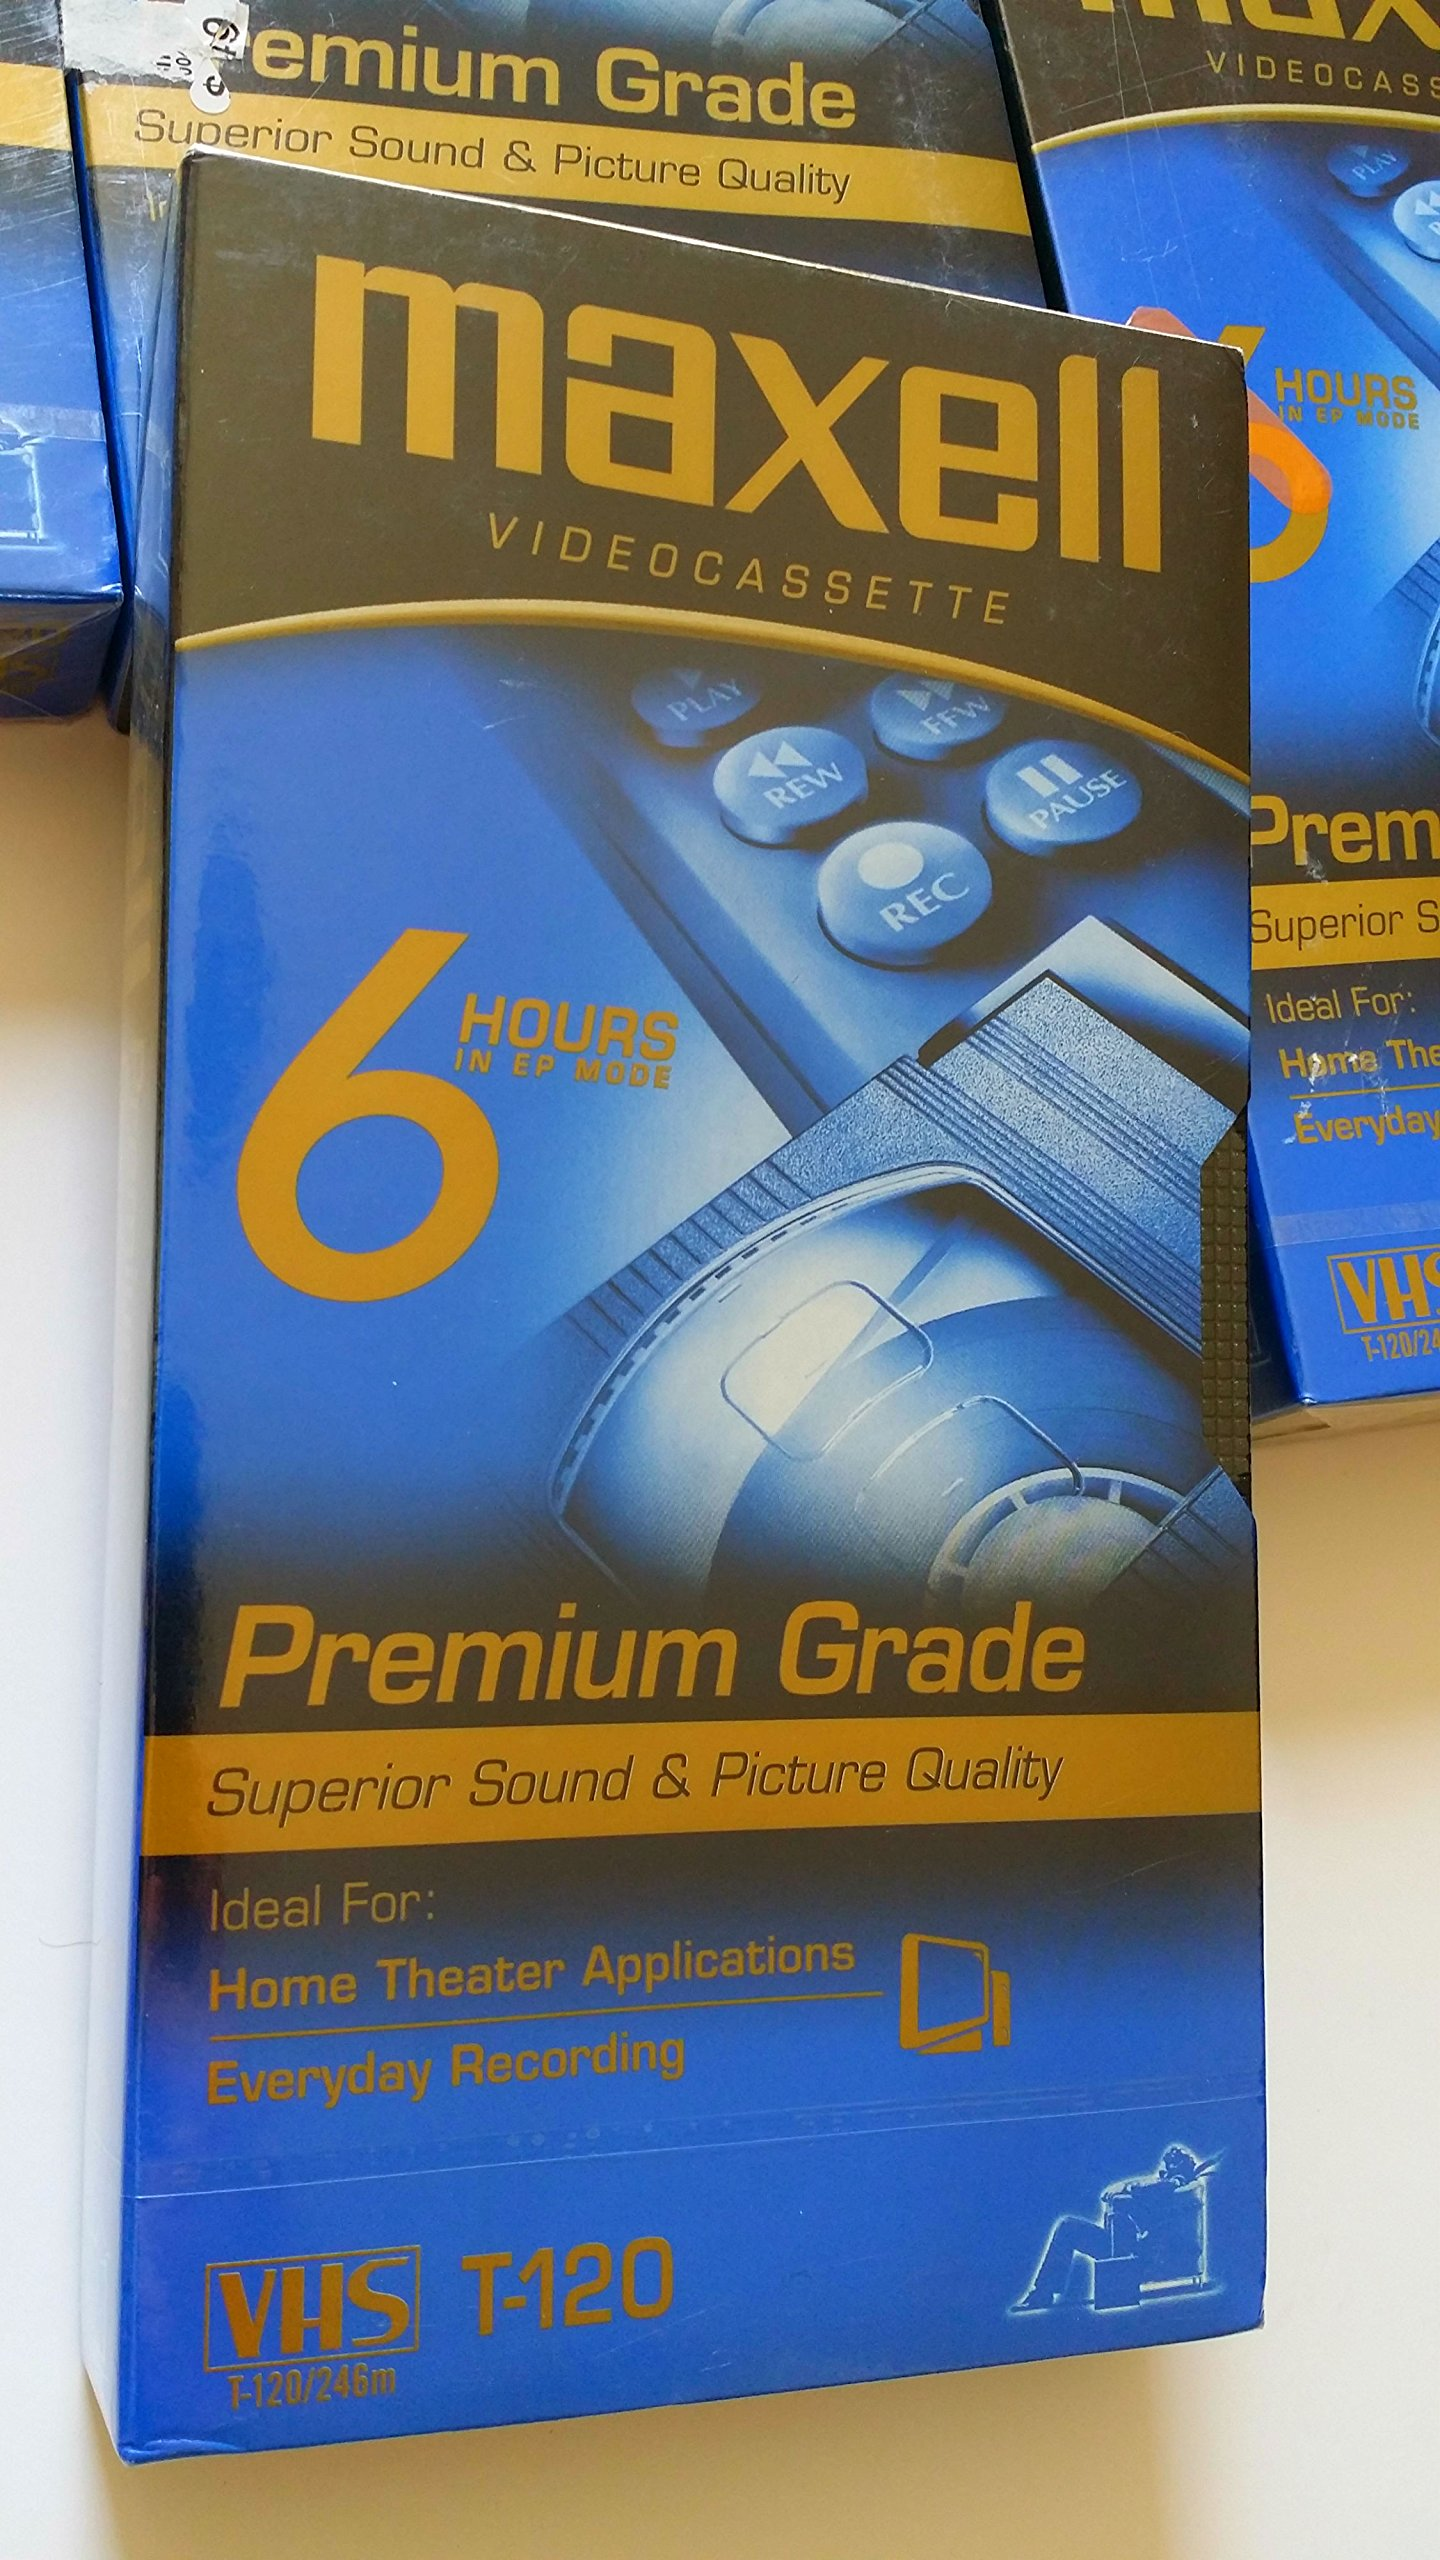 4 PACK MAXELL VHS 6 HOUR PREMIUM GRADE T-120